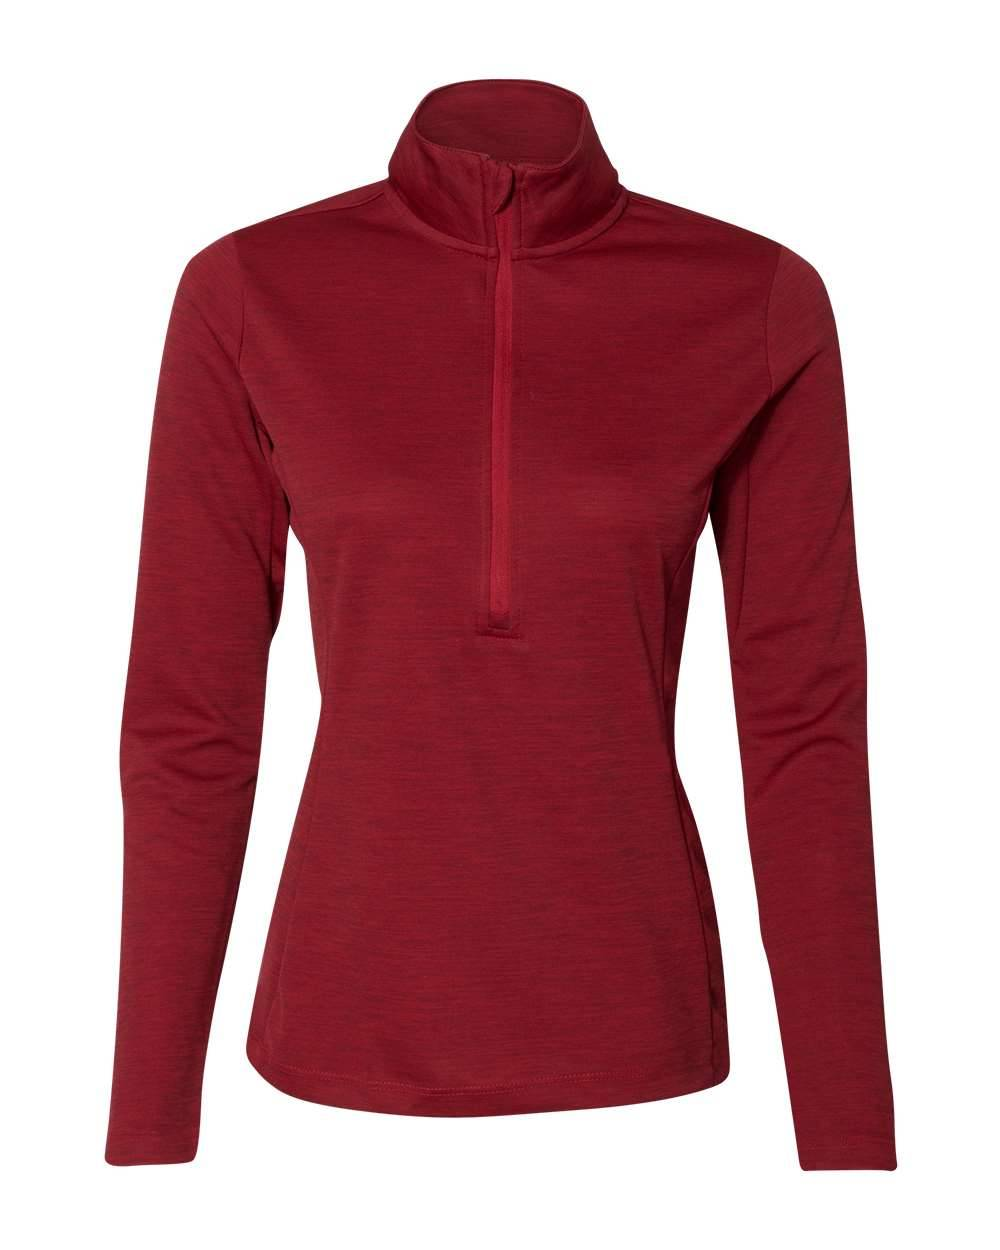 Russell Athletic - Women's Striated Quarter-Zip Pullover - QZ7EAX - True Red - 2X-Large